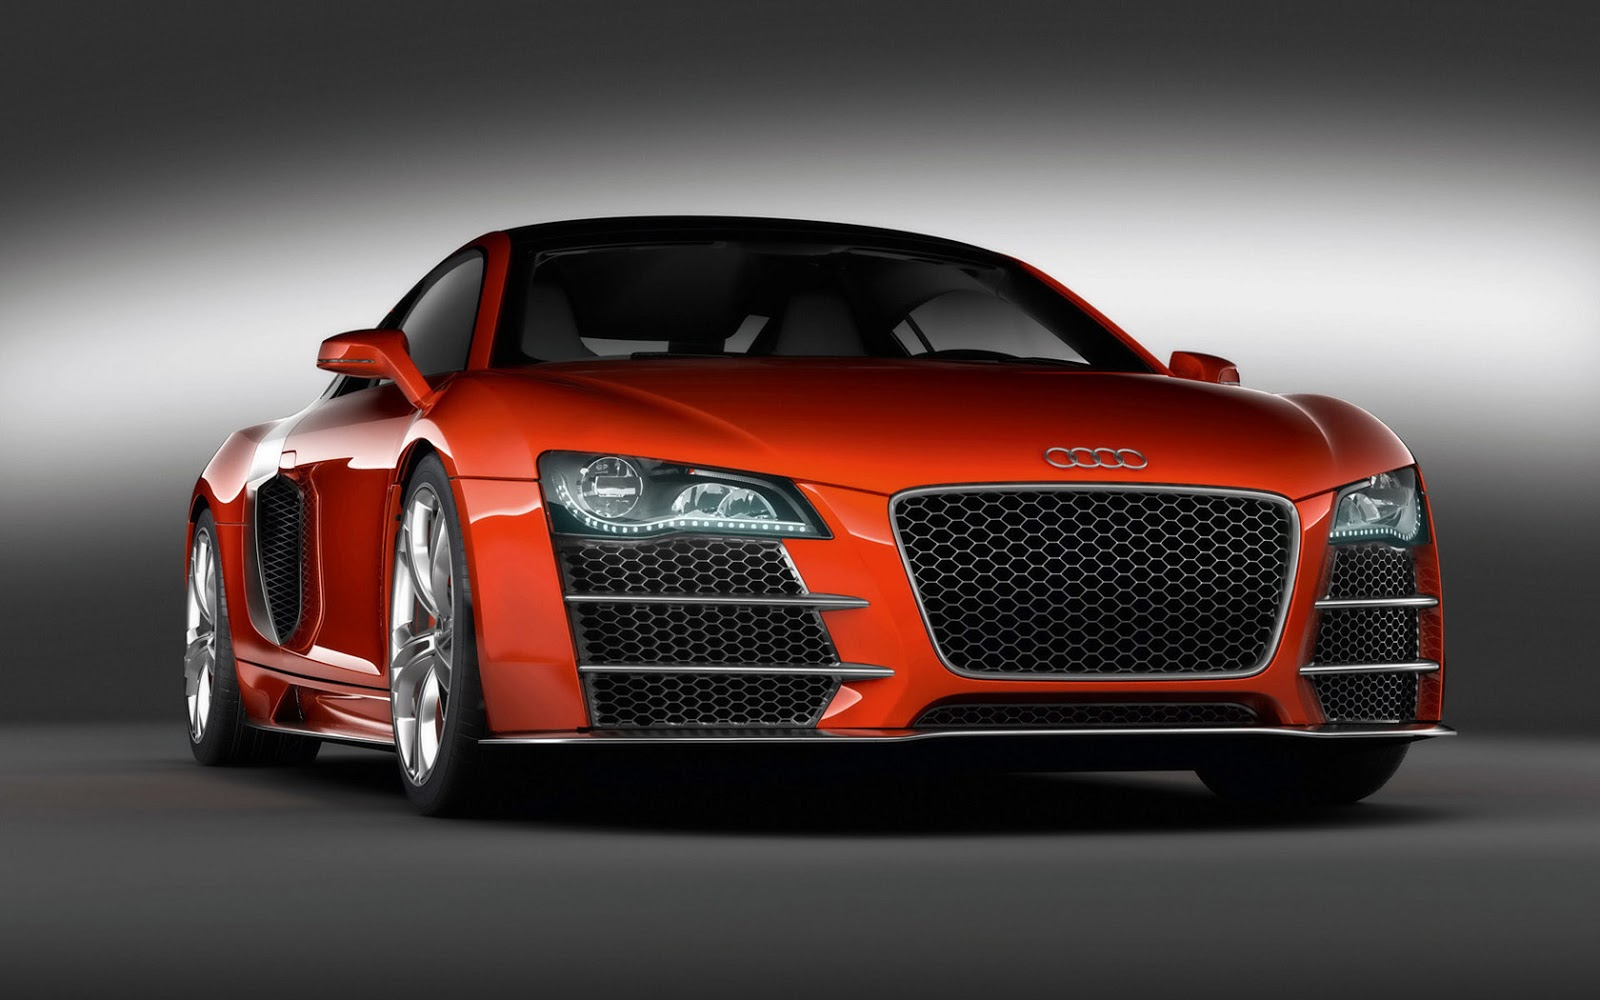 Audi R8 Car Wallpapers HD